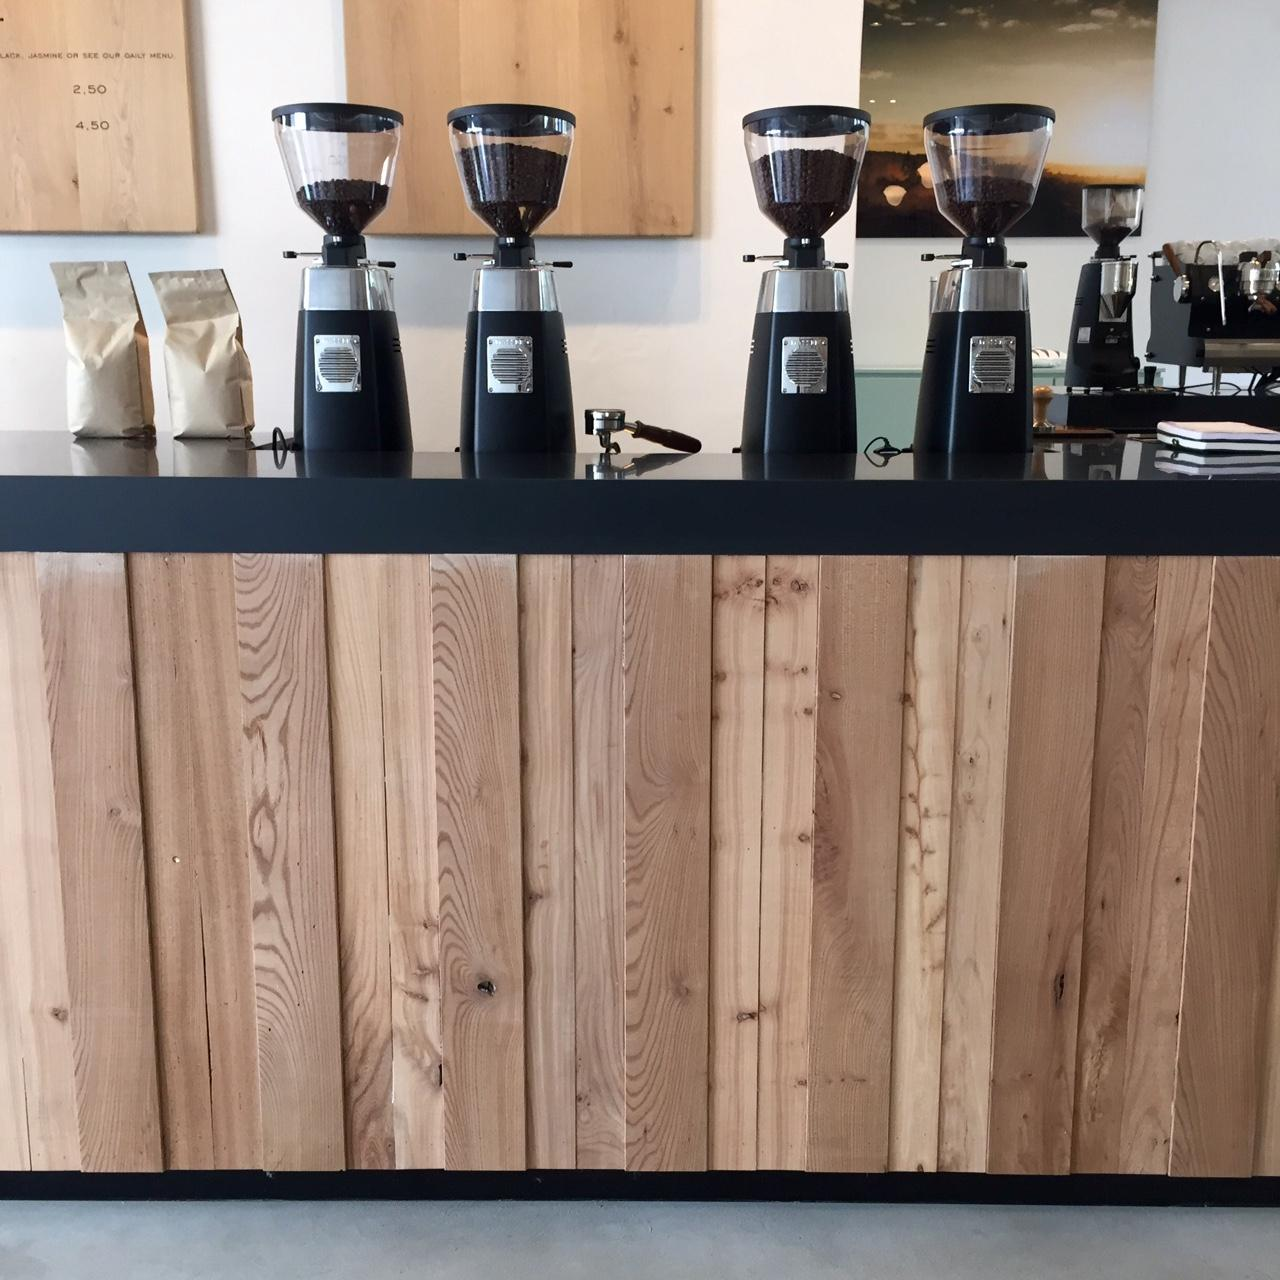 View of the bar with four grinders